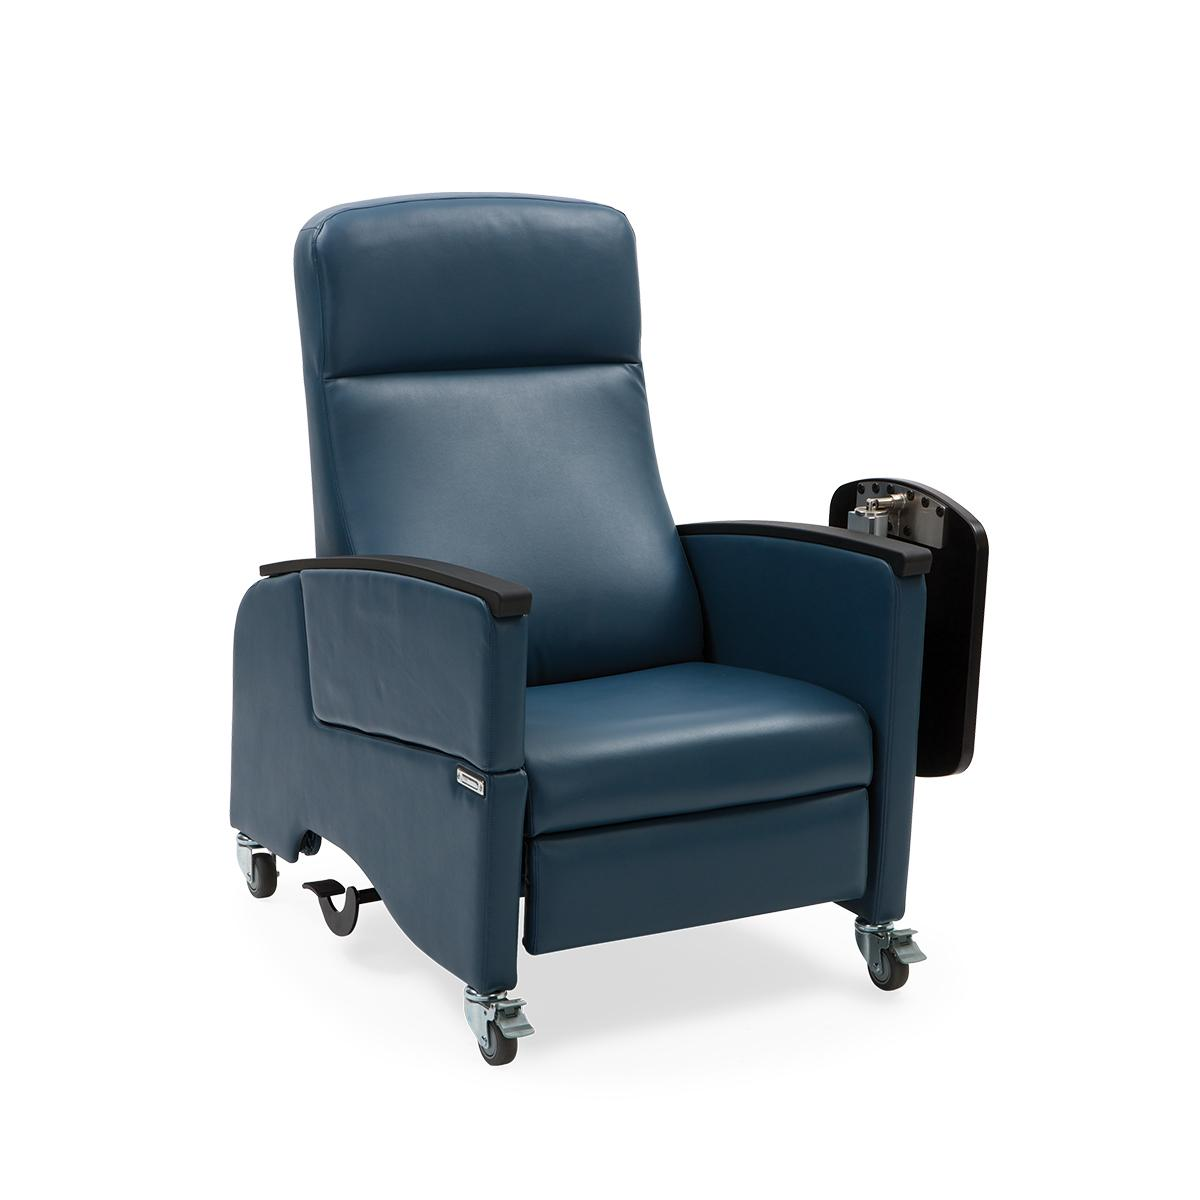 Art of Care Four Position Recliner, navy, 3/4 view